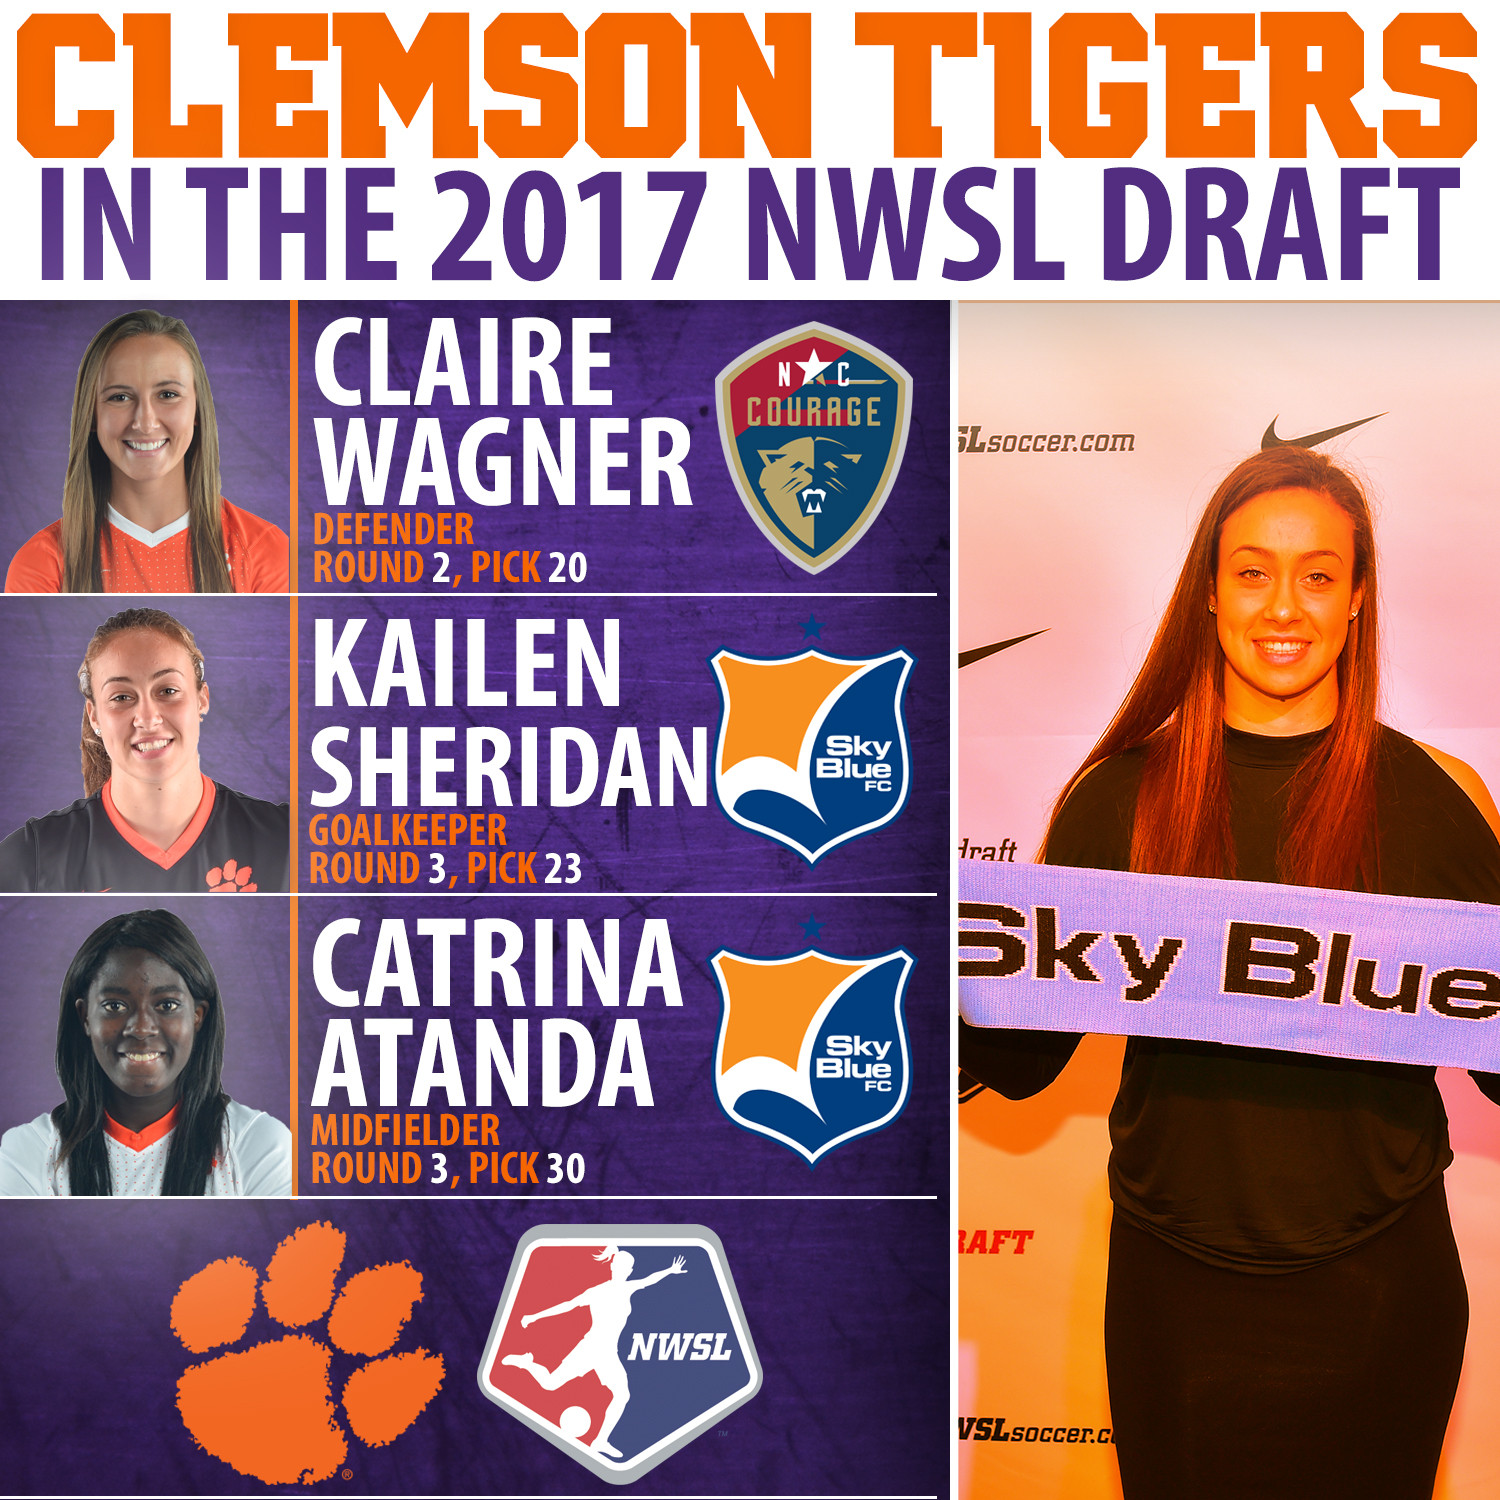 Three Clemson Players Selected in NWSL Draft, Second-Most among College Programs